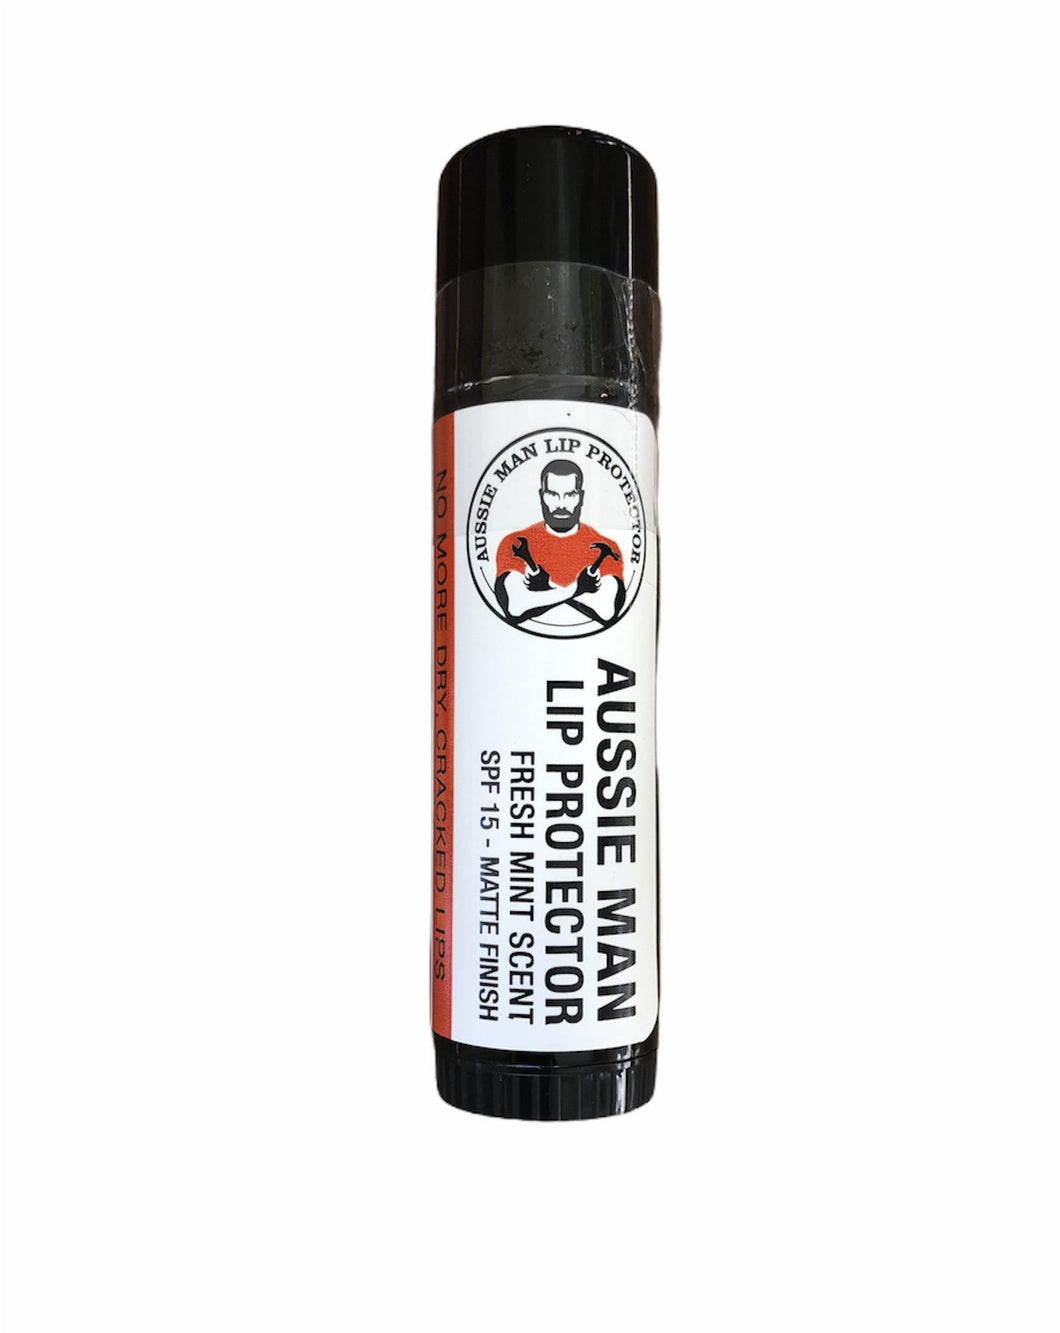 Aussie Man Lip Protector Has this ever happened to you? You're on the tools in the bloody hot sun, lips chapped amongst your manly AF beard.This is the lip protector for men. Our lip protector will relieve you from dry and cracked lips, PLUS it's a matte finish with sunscreen SPF 15. To sort out your dry and cracked lips, you need the good stuff. Shea Butter, Hemp Seed Oil, Beeswax. The best part – our lip protector is 15g of Aussie made, manly lip protecting goodness. Available at My Harley and Rose.